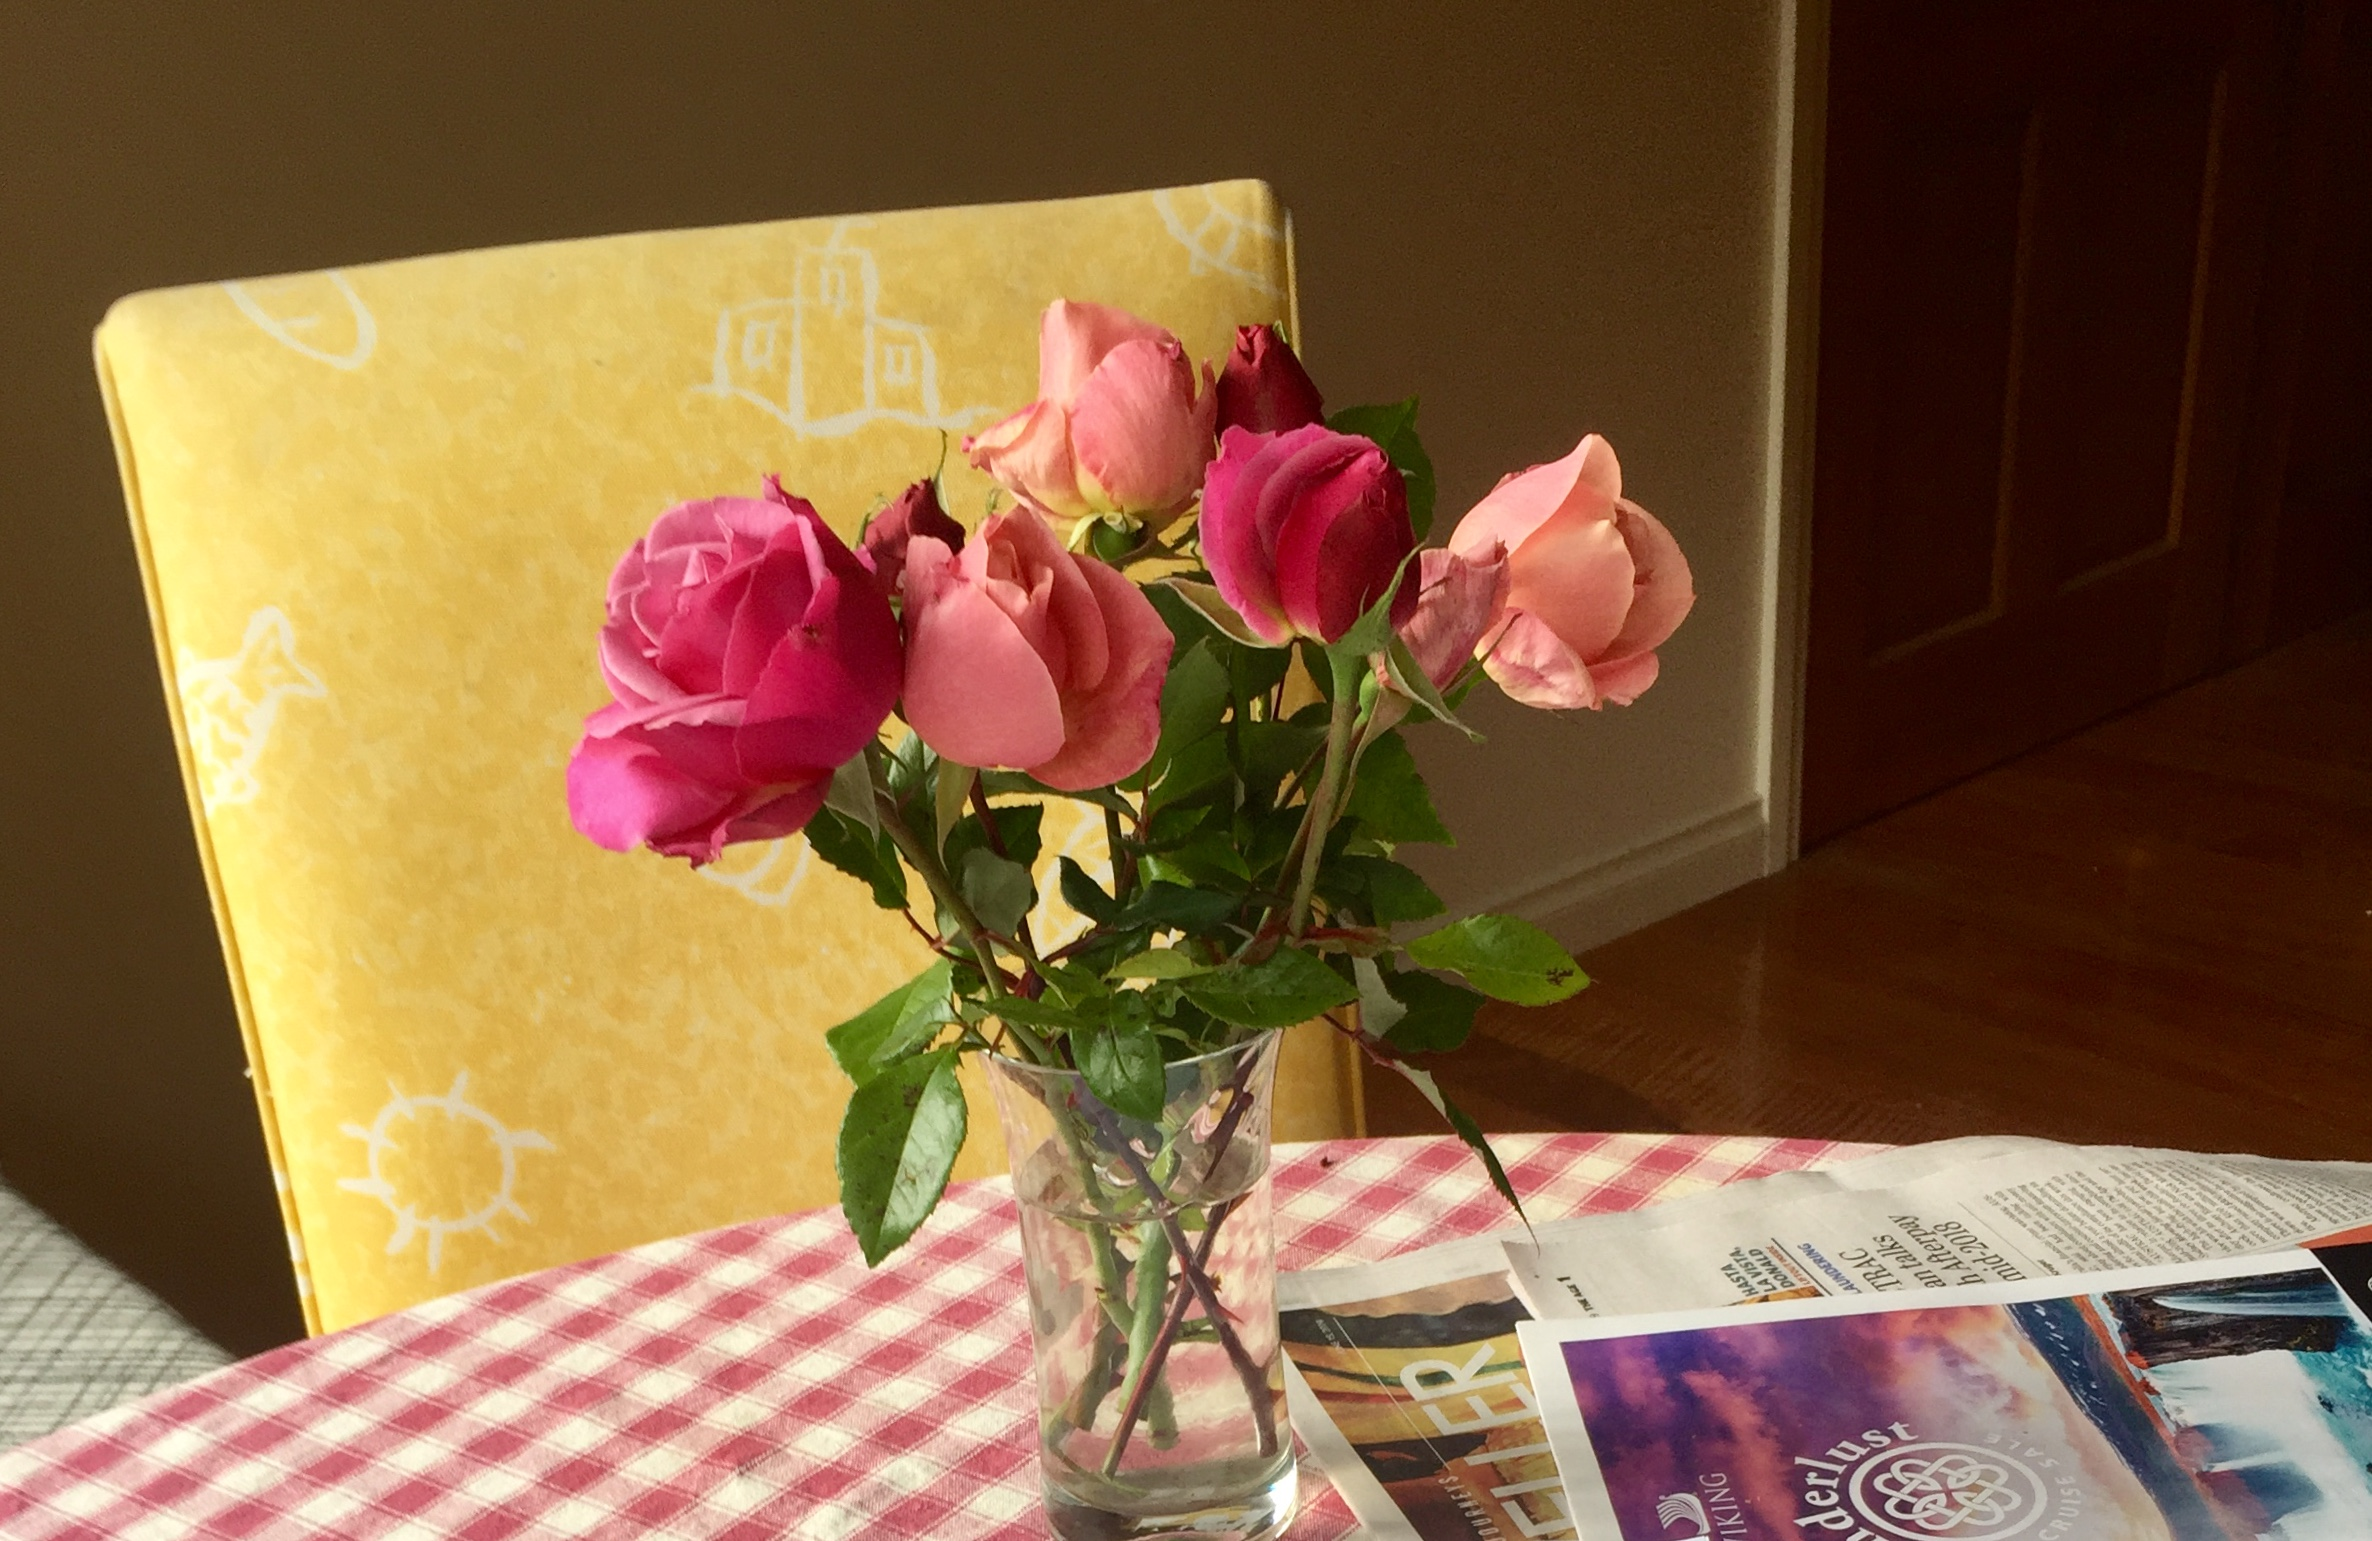 Pink late bloomer roses on a red and white checked tablecloth in front of a yellow chair